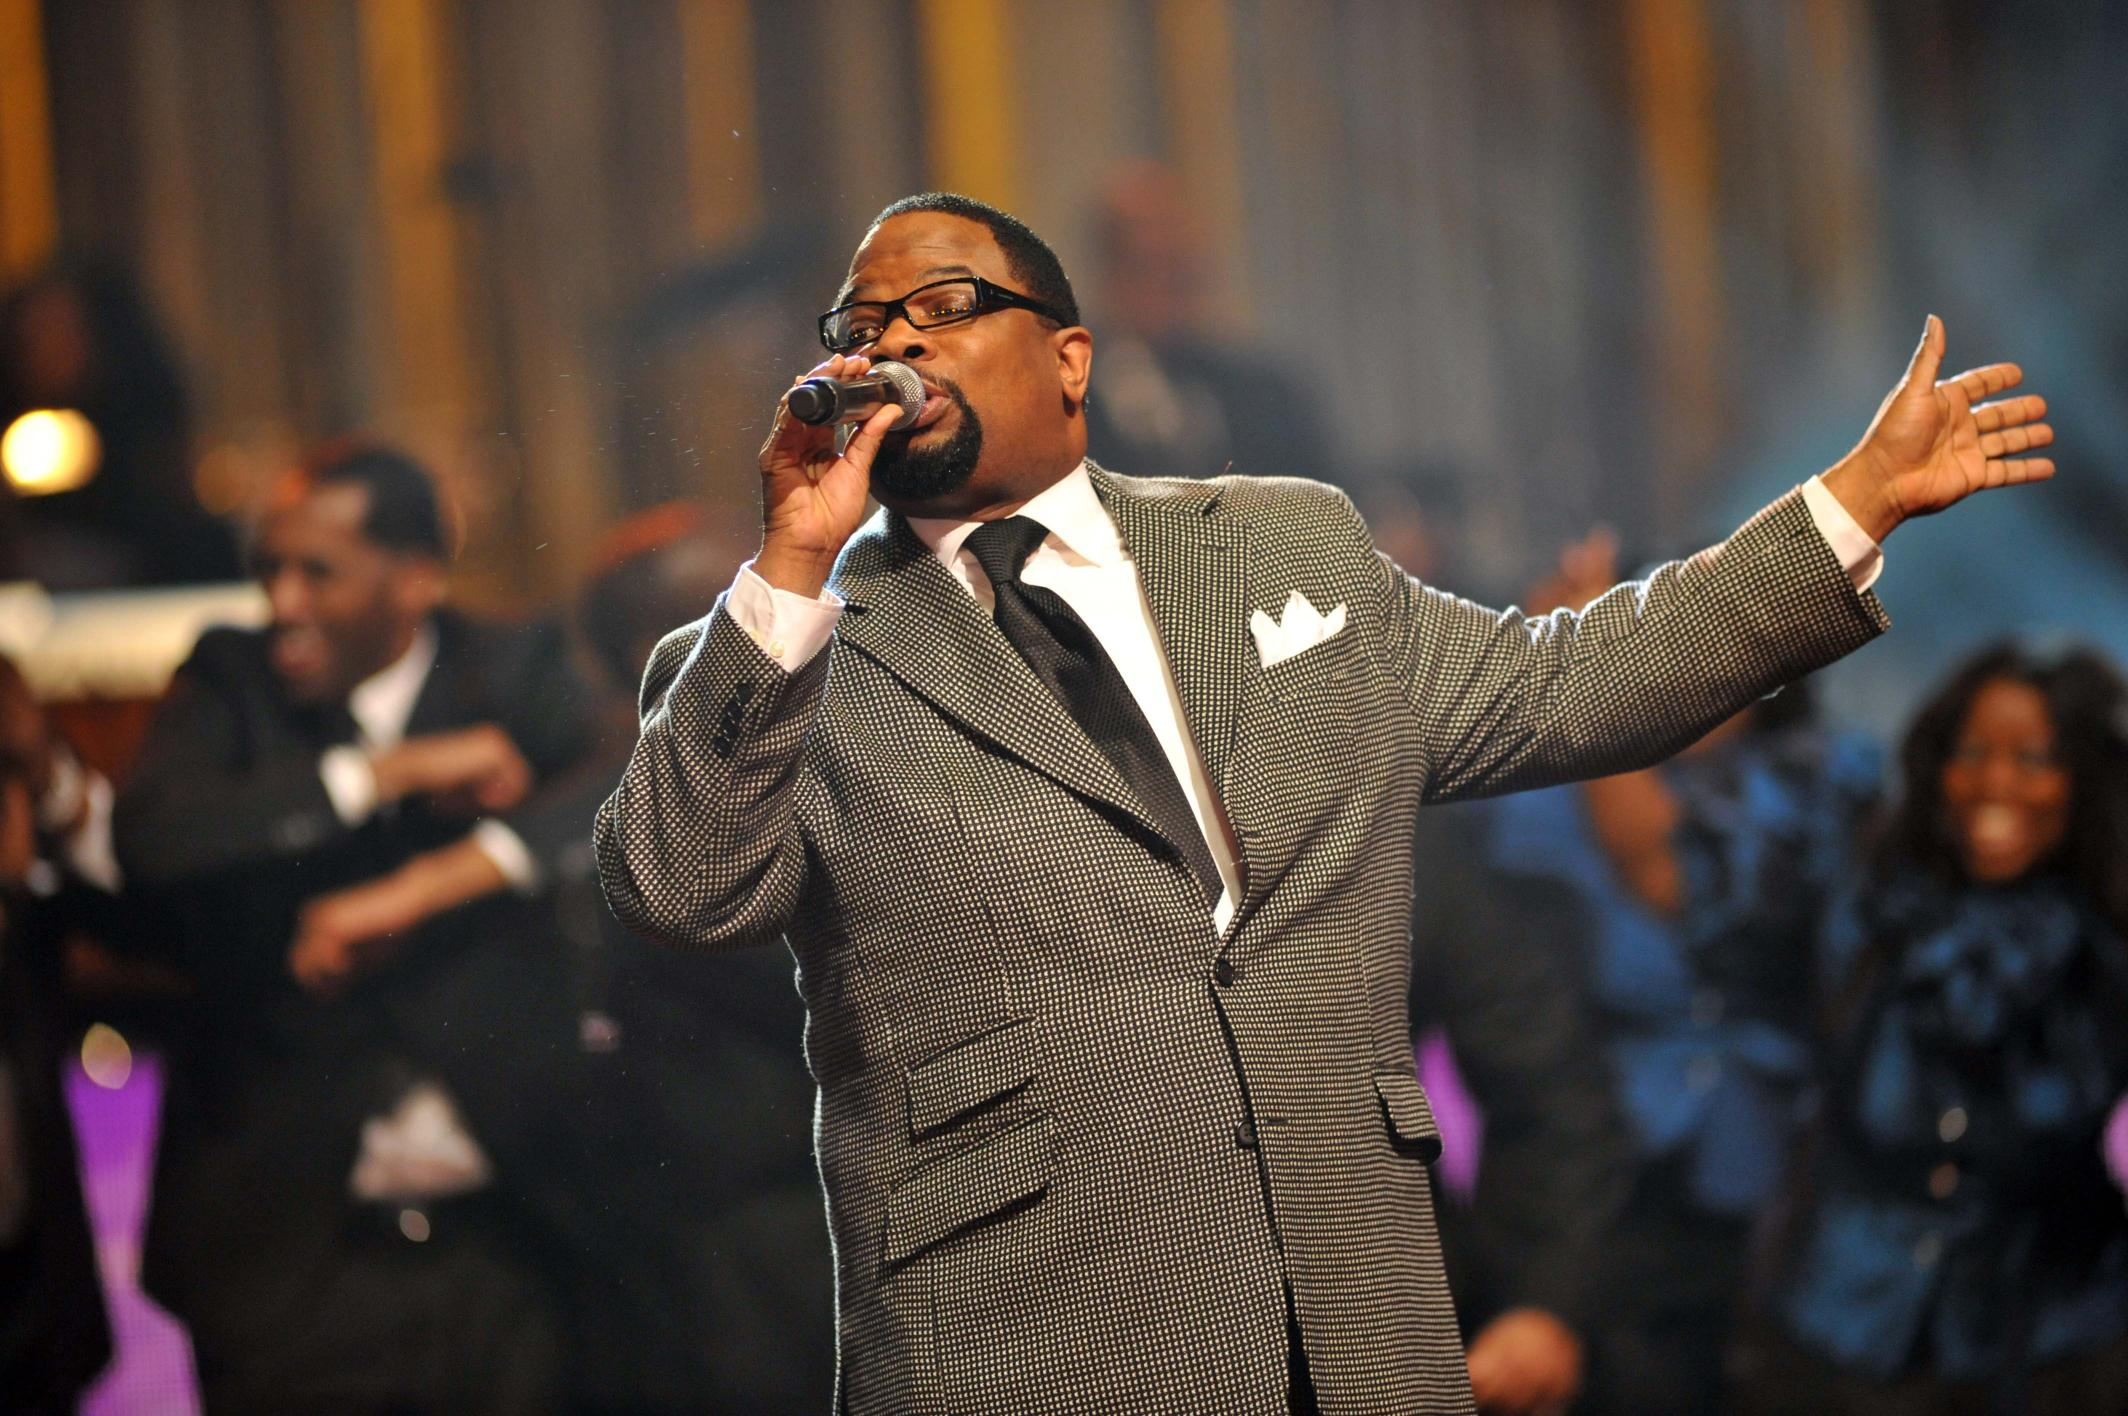 Hezekiah Walker with LFCC during the opening number